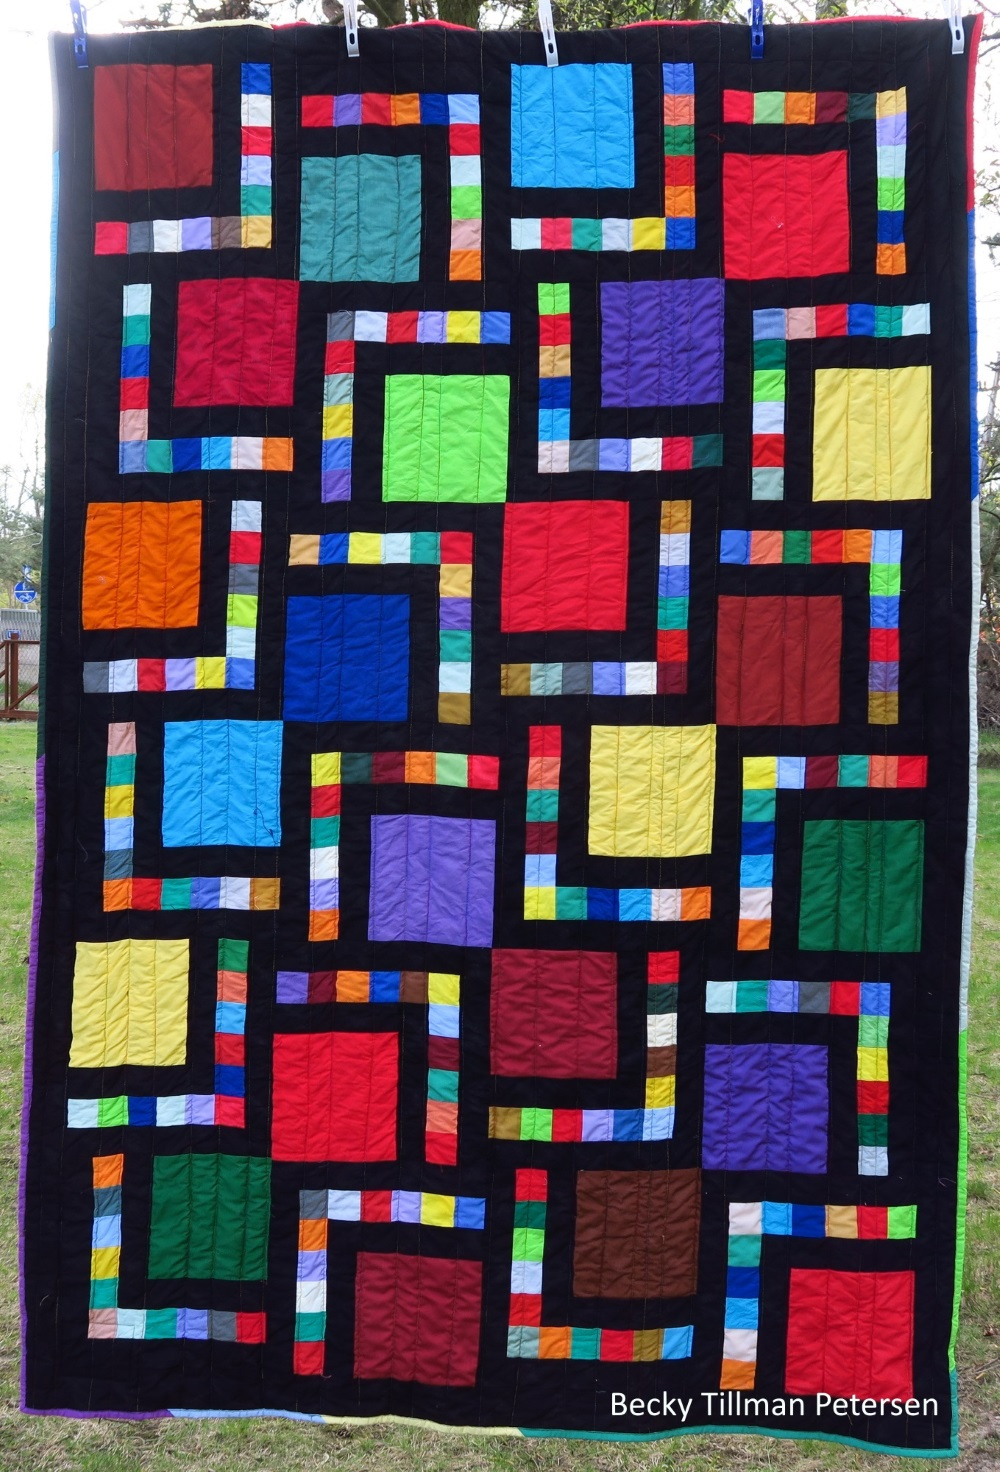 40 Big Block quilt 1. I actually made 5 quilts from this same block - all with different layouts.